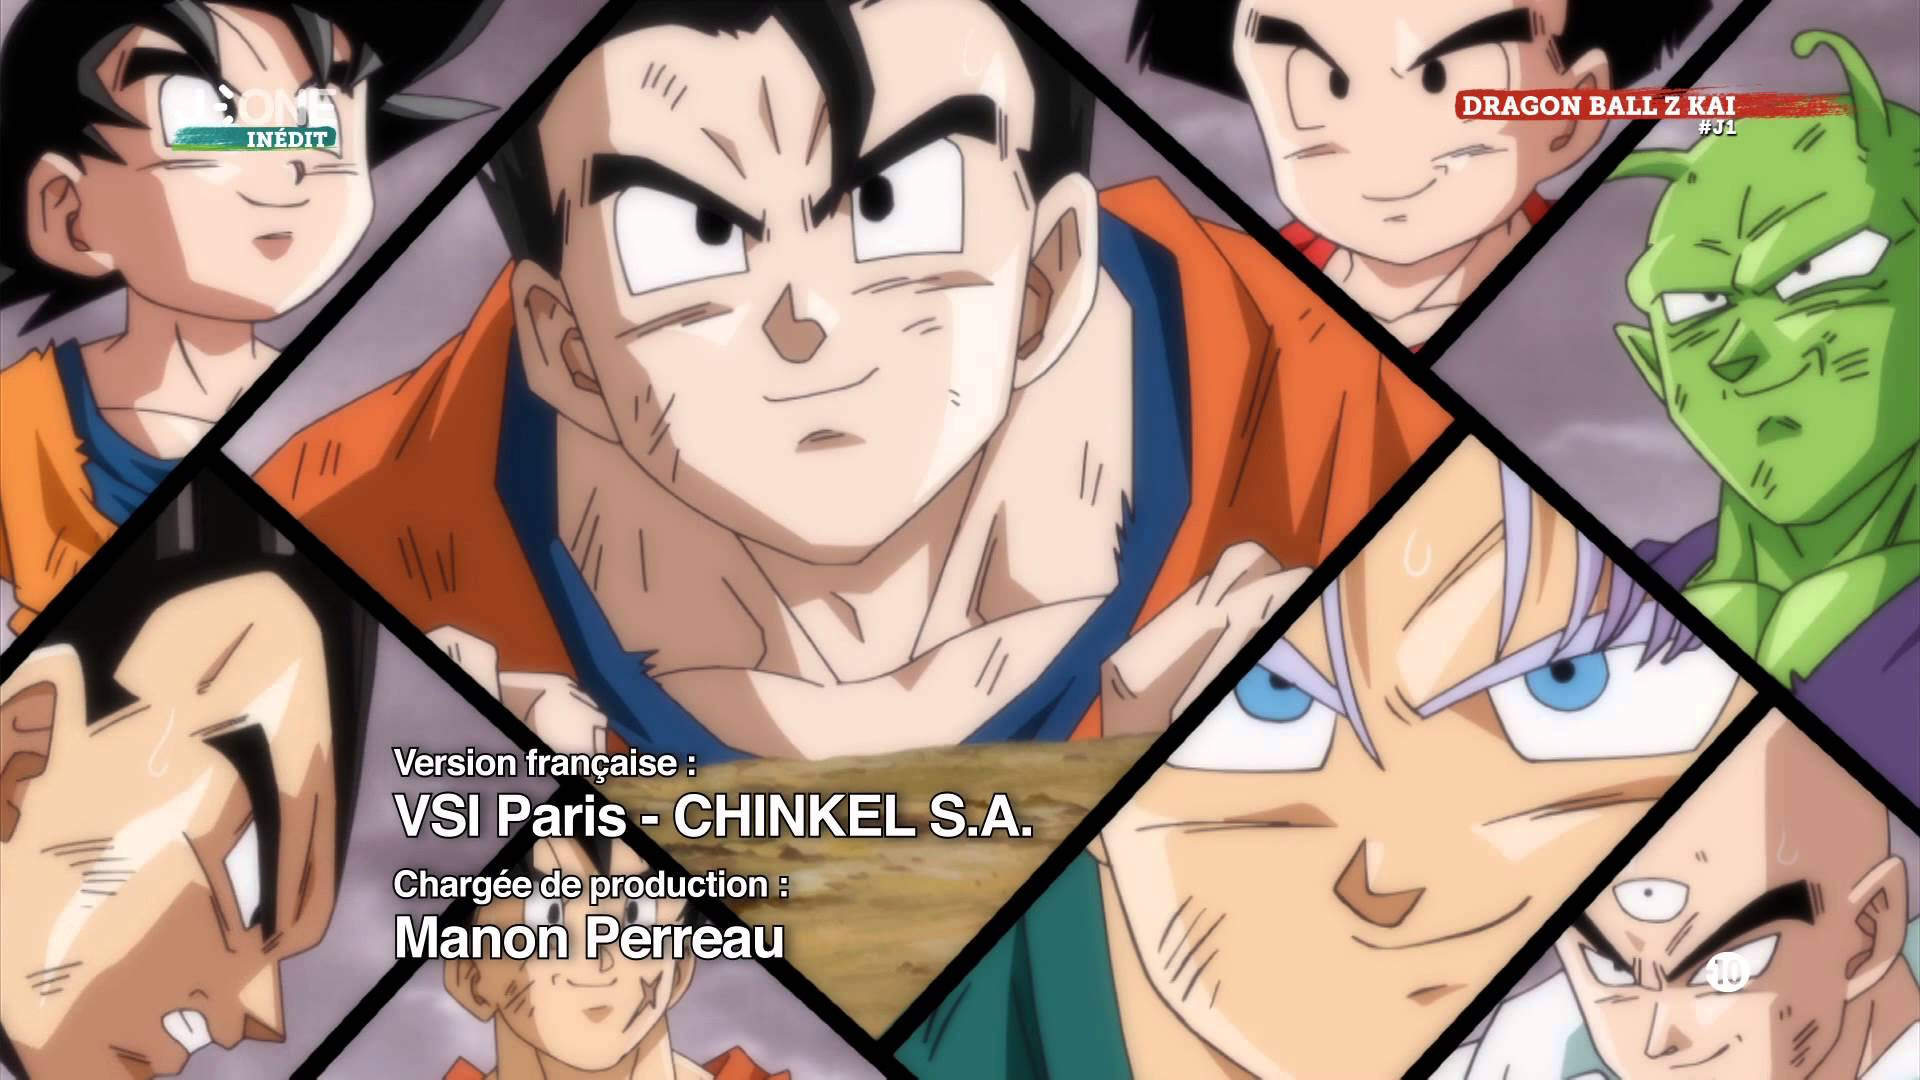 image z fighters optimistic in dragon ball z kai the final